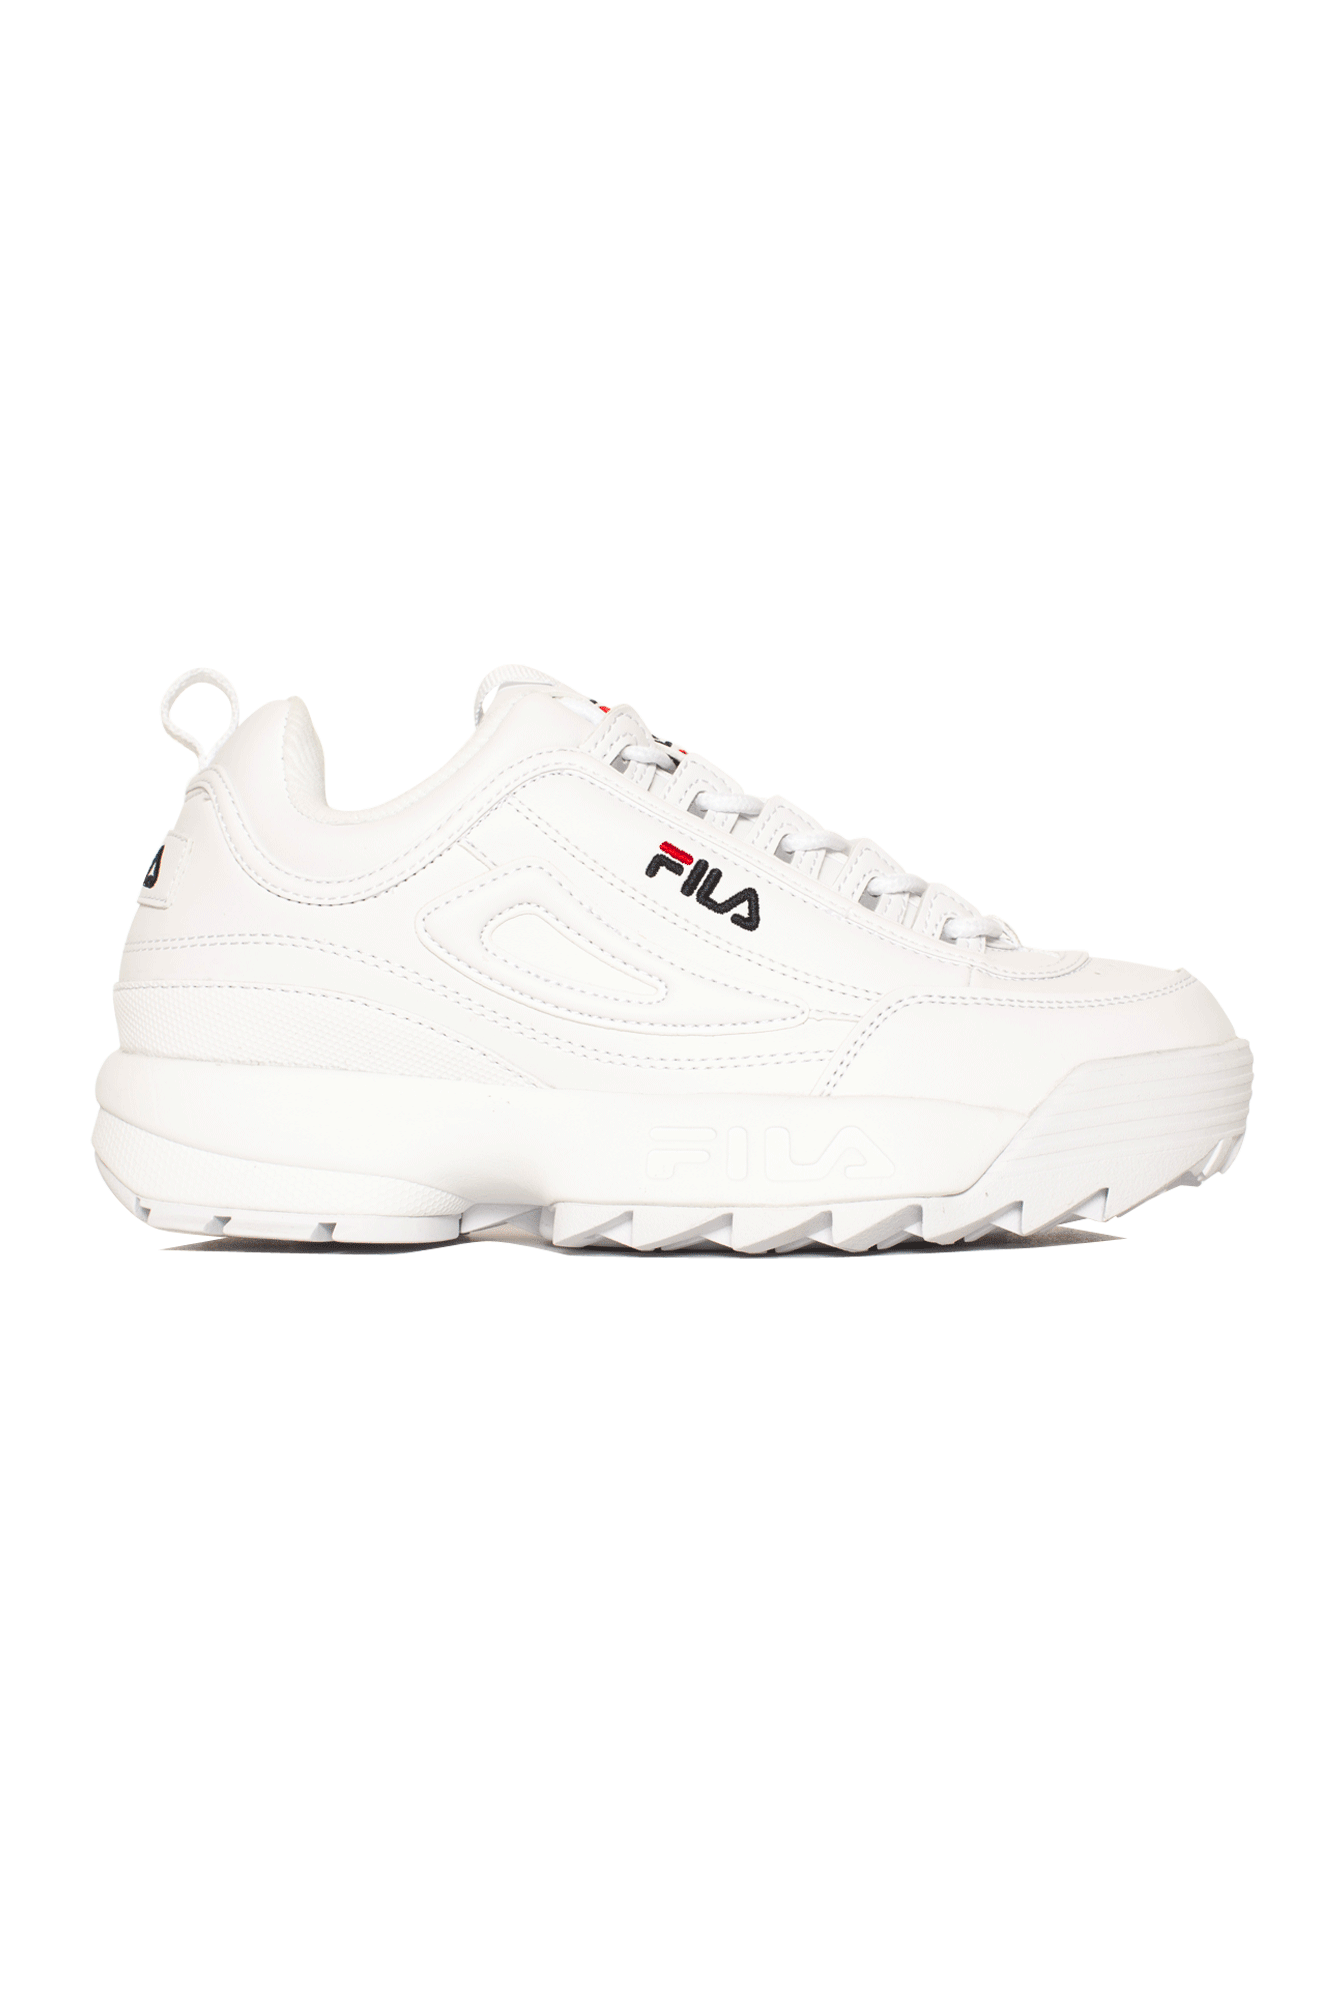 Fila Sneakers Disruptor Low Wmn White 1010302#000#1FG#5,5 - One Block Down